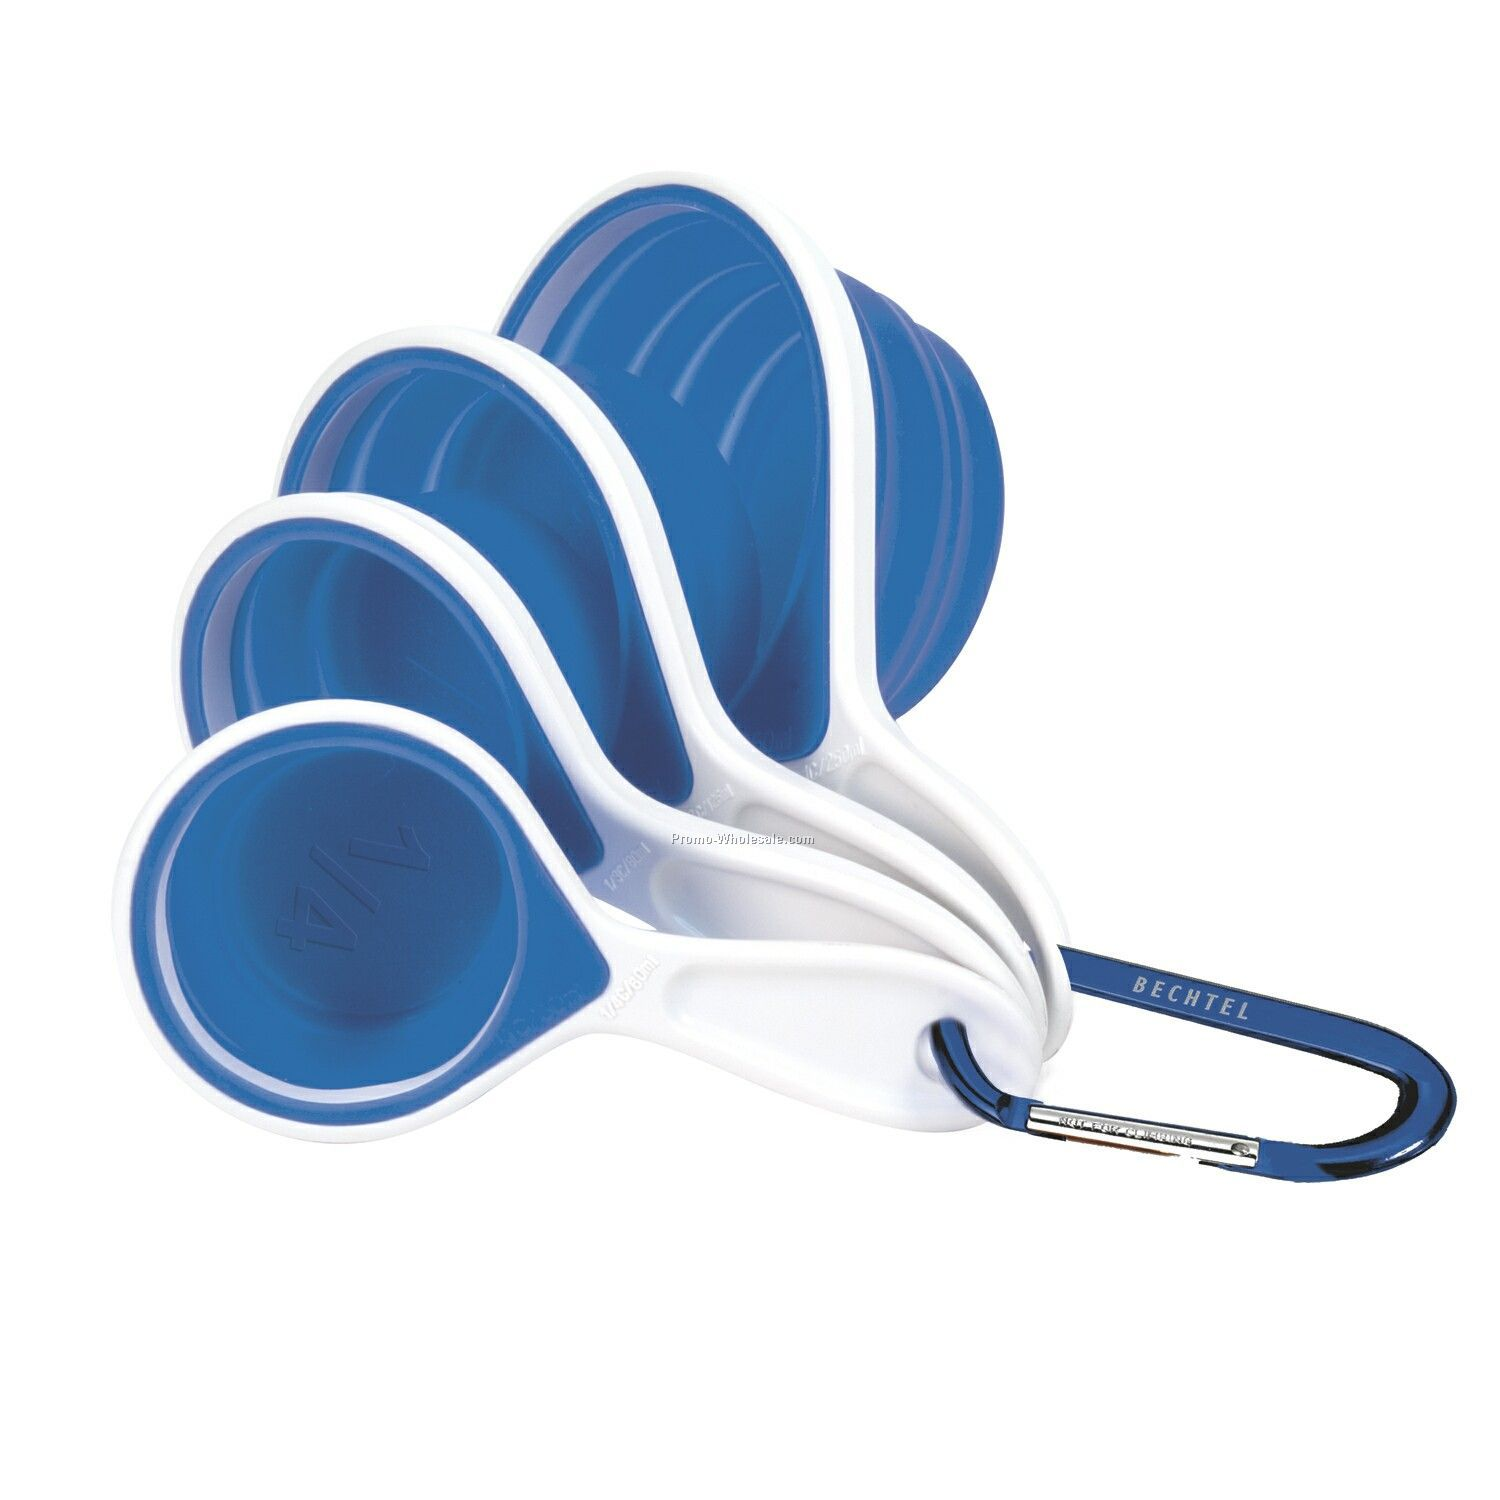 Cool Blue Silicone Measuring Cups